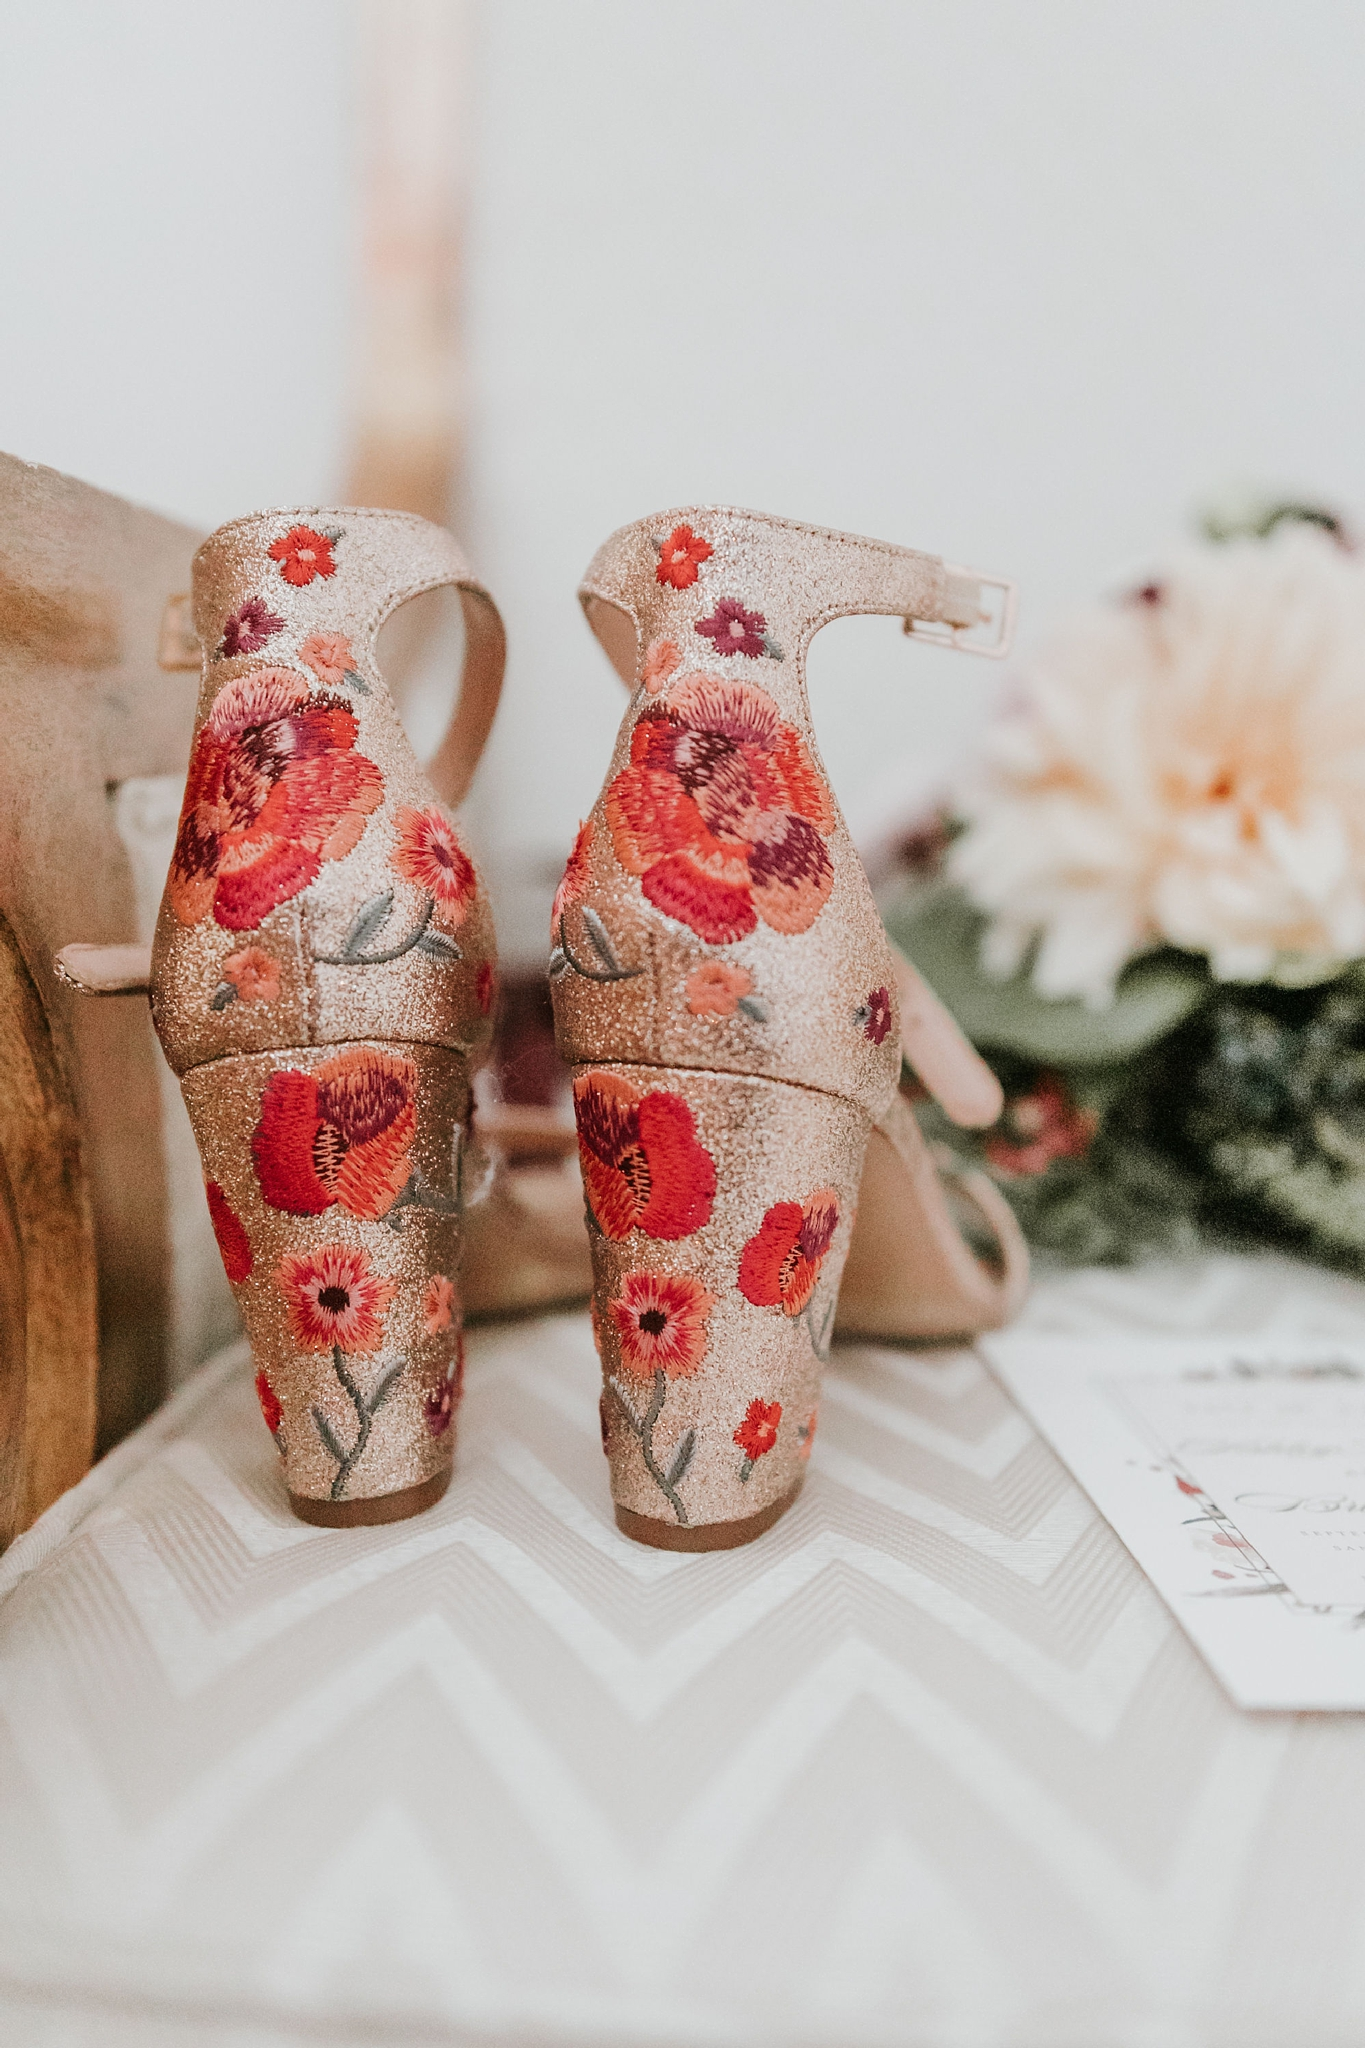 Alicia+lucia+photography+-+albuquerque+wedding+photographer+-+santa+fe+wedding+photography+-+new+mexico+wedding+photographer+-+new+mexico+wedding+-+new+mexico+wedding+-+colorado+wedding+-+bridal+shoes+-+bridal+inspo_0034.jpg